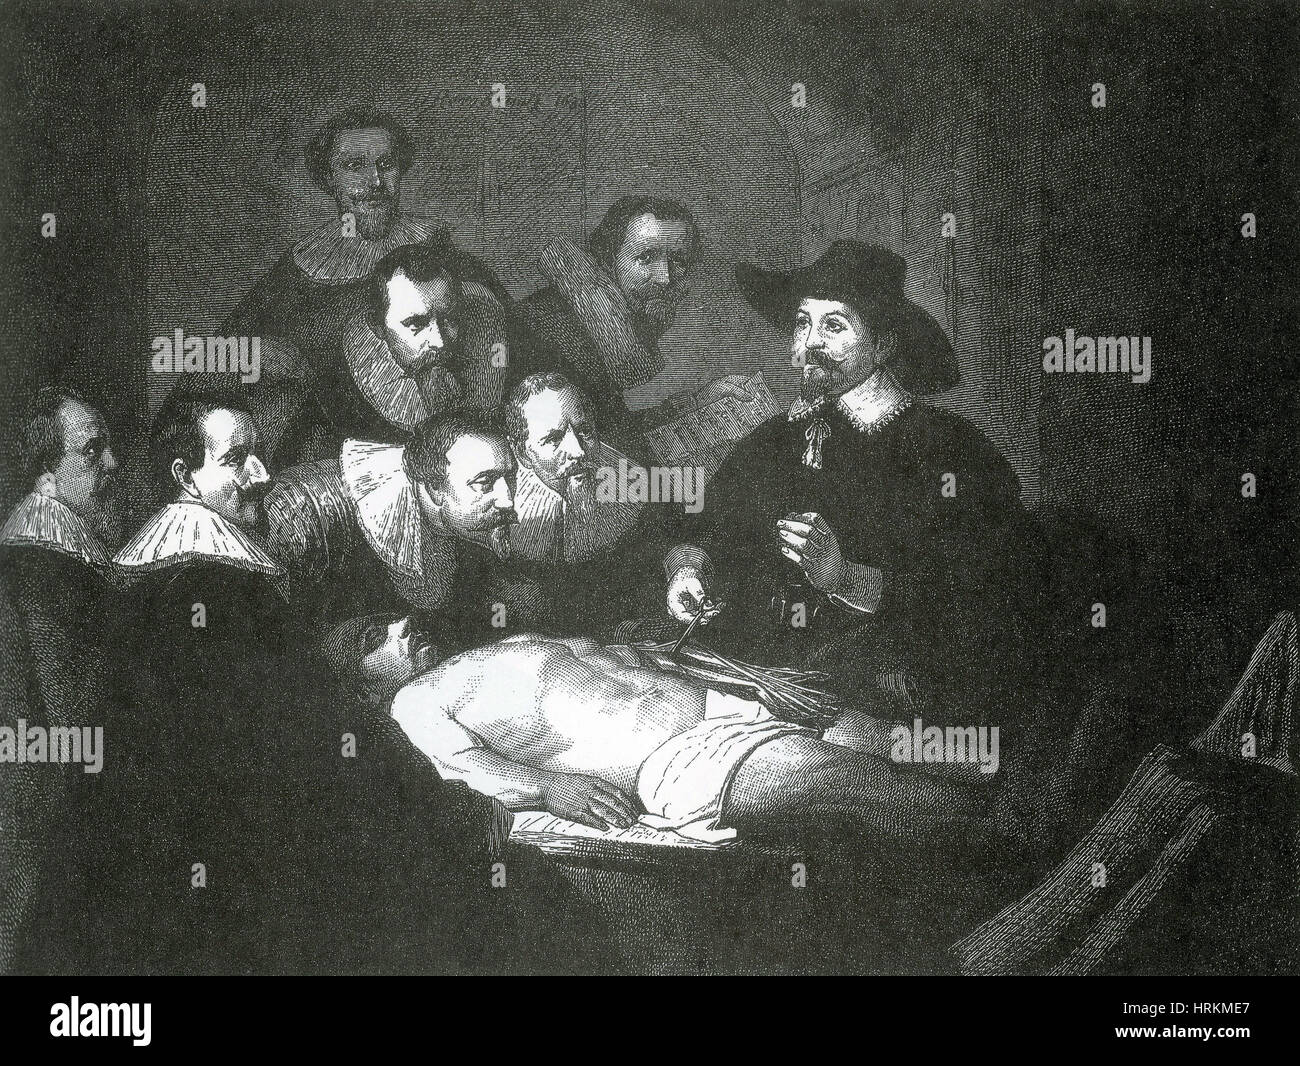 Anatomy Lesson, 1632 - Stock Image